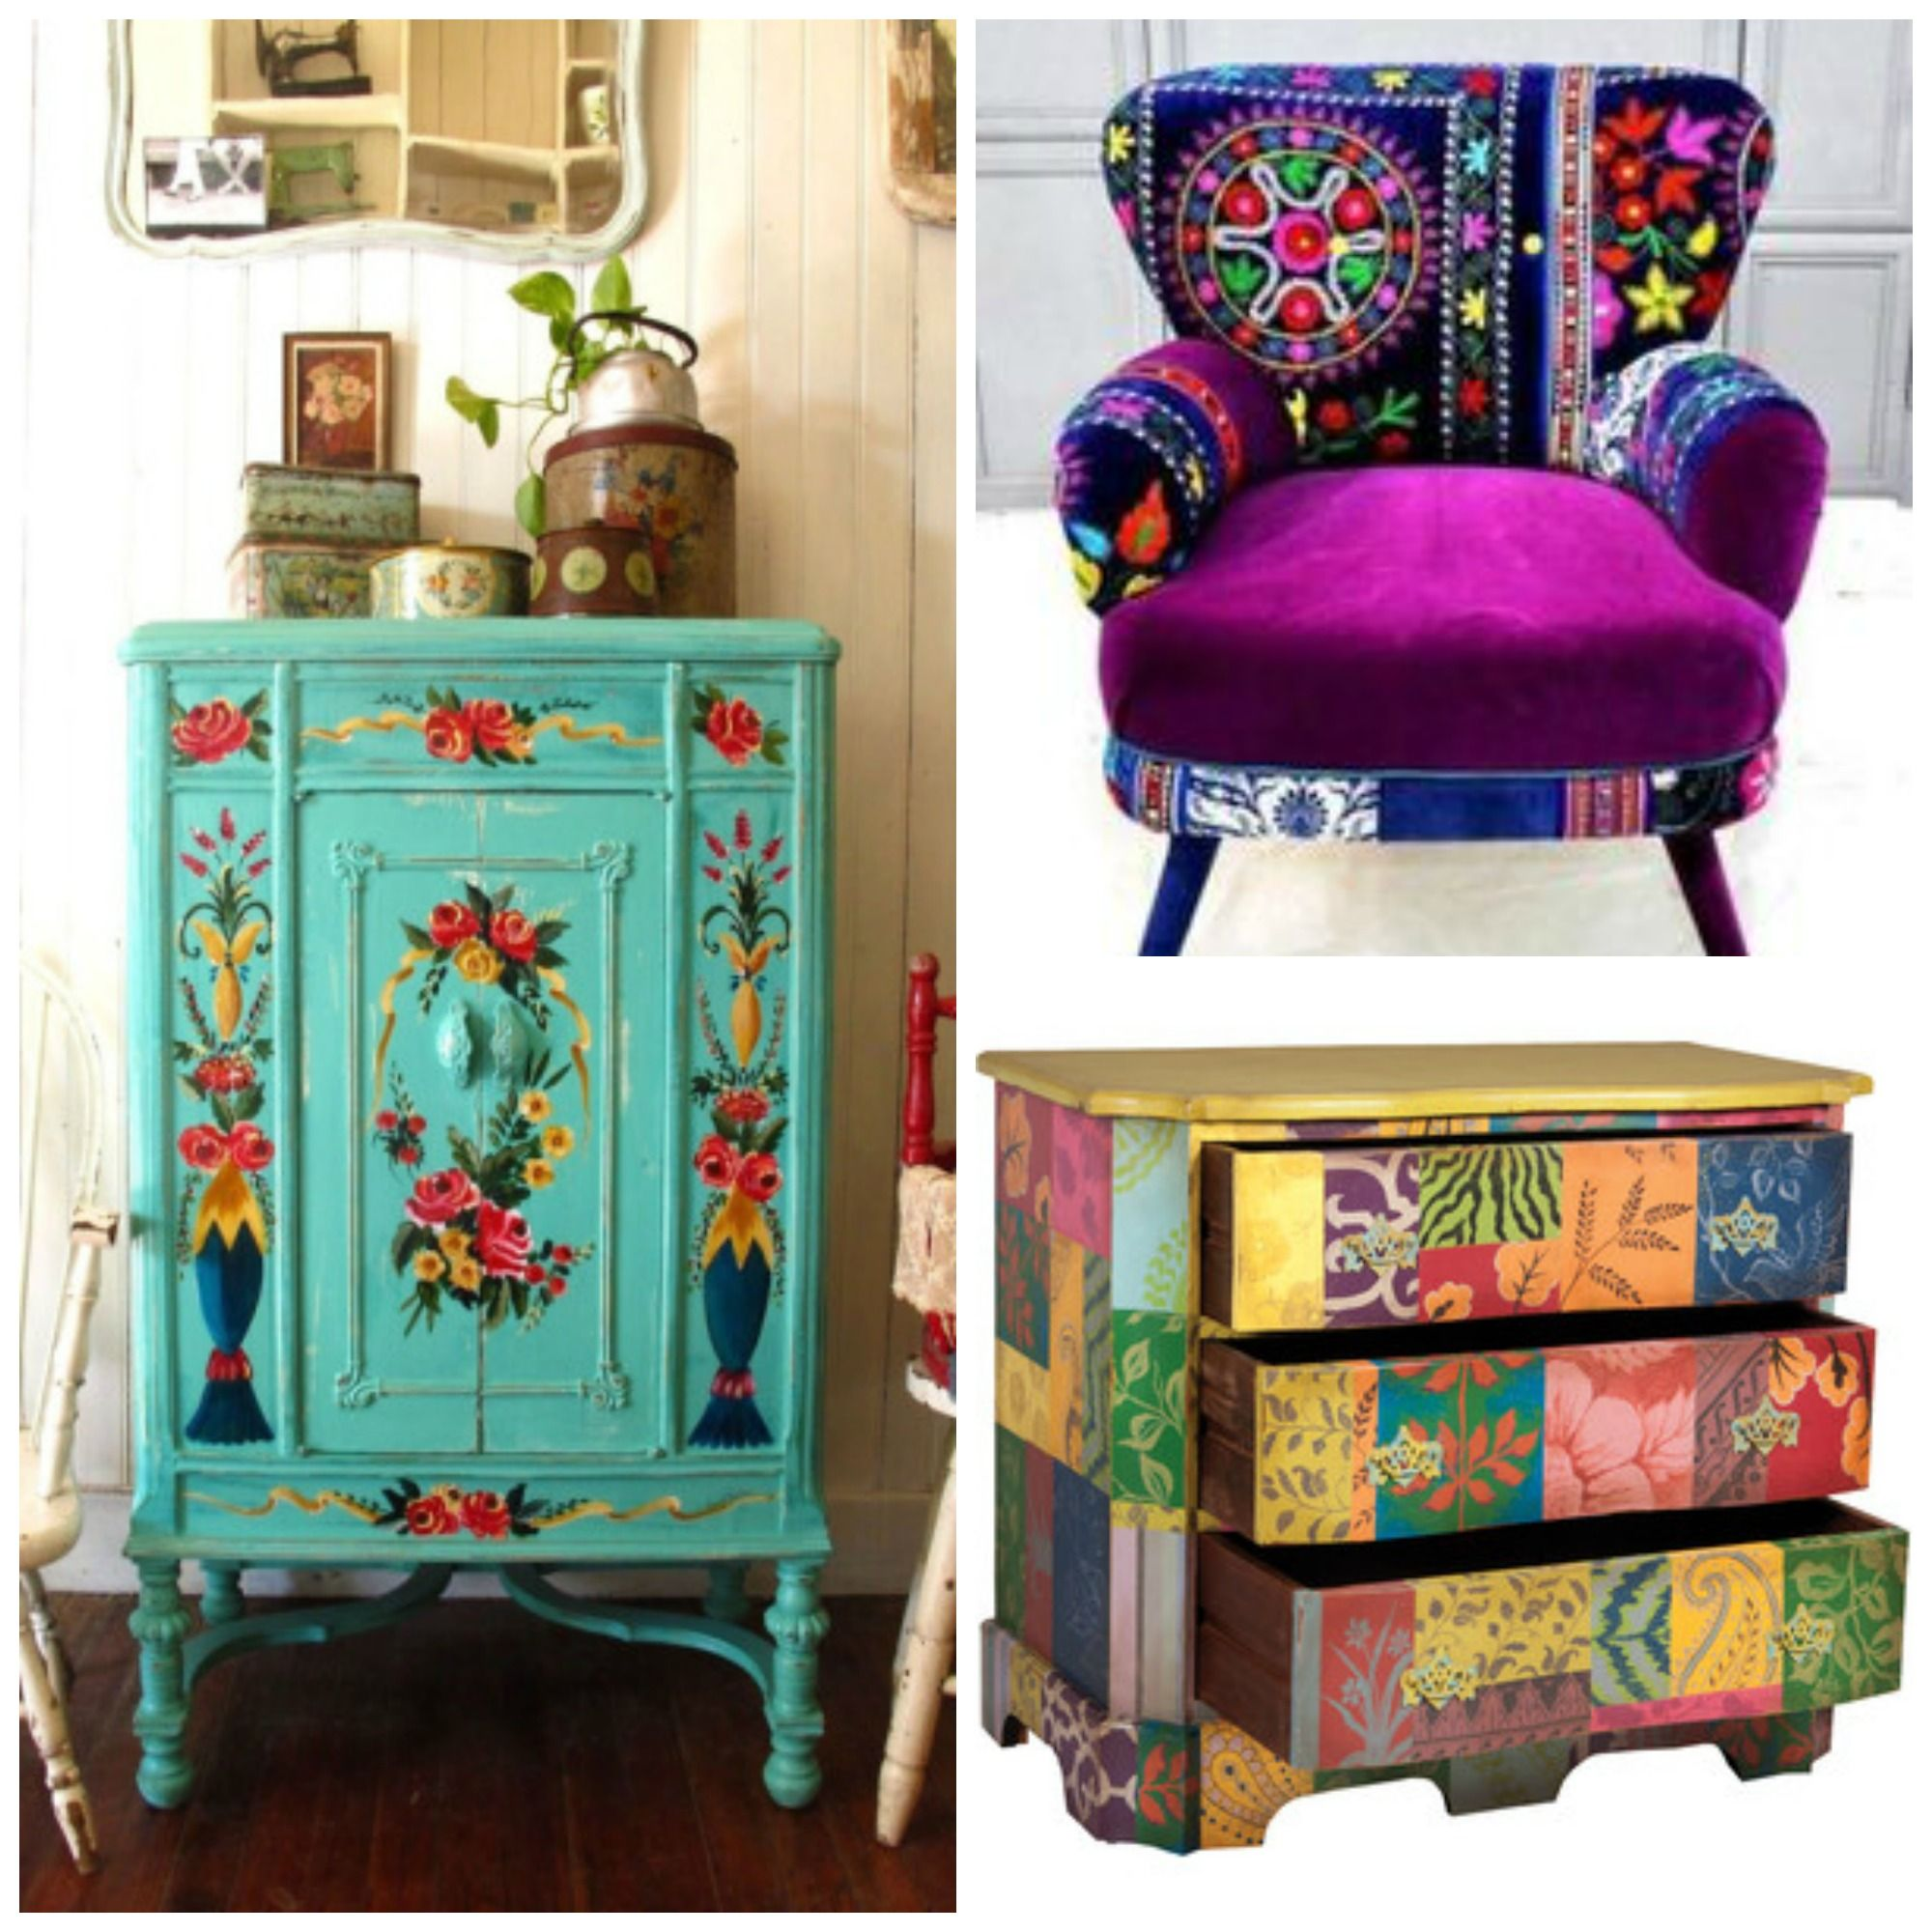 Bohemian Furniture Bohemian Life Pinterest Bohemian Furniture Bohemian And Boho